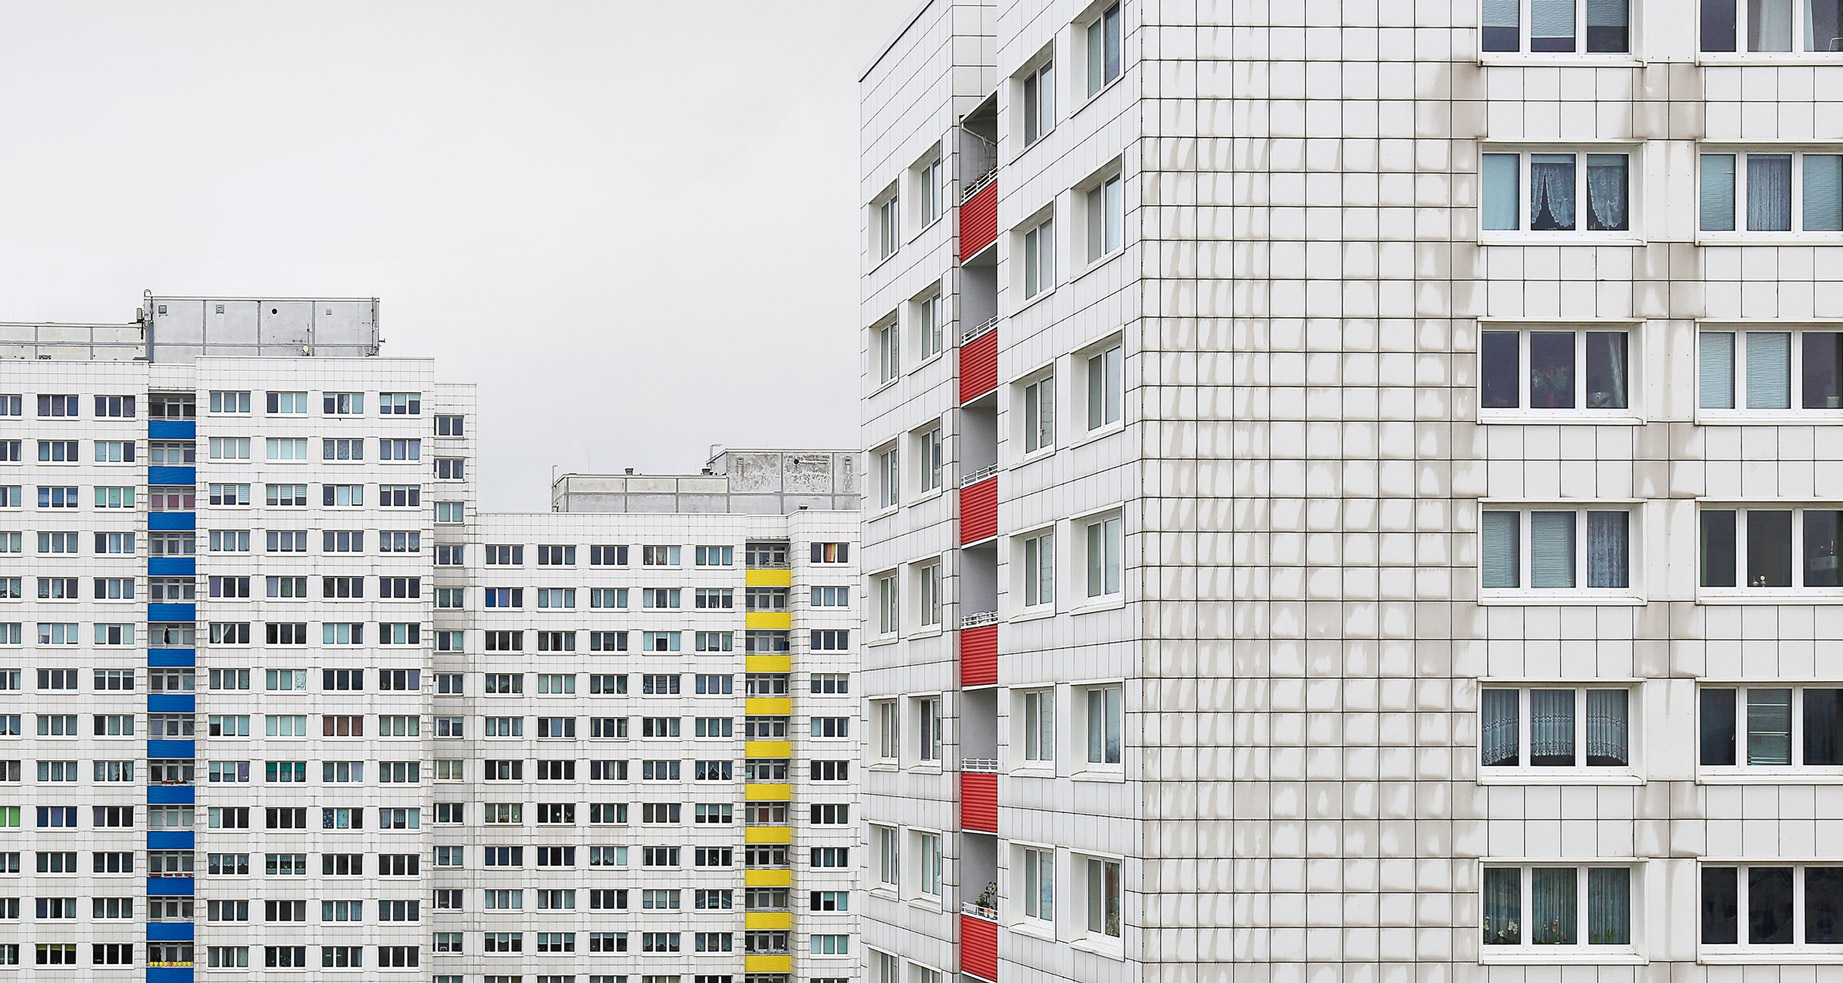 Prints from our photography book Eastern Blocks: Concrete Landscapes of the Former Eastern Bloc